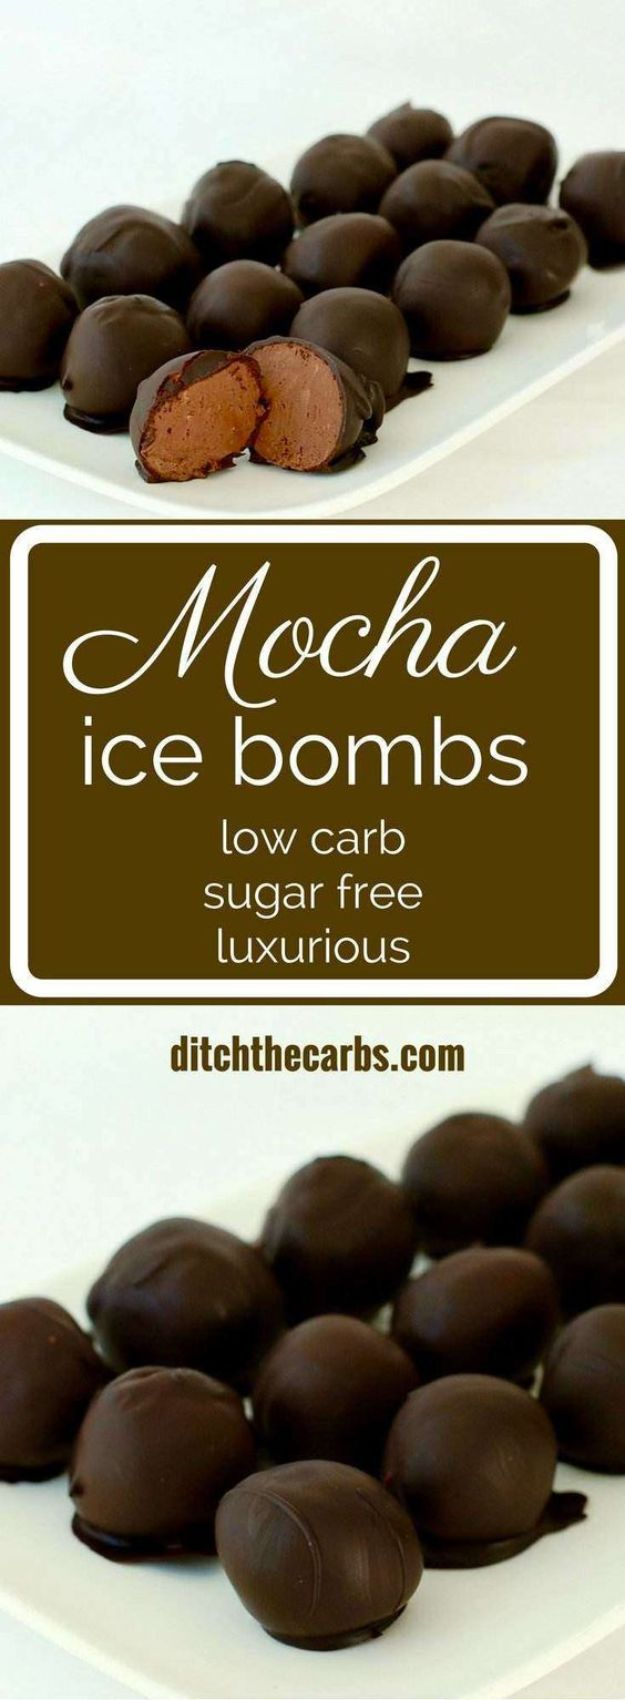 Low Sugar Dessert Recipes - Mocha Ice Bombs - Healthy Desserts and Ideas for Healthy Sweets Without Much Sugar - Raw Foods and Easy Clean Eating Dessert Tips, Keto Diet Snacks - Chocolate, Gluten Free, Cakes, Fruit Dips, No Bake, Stevia and Sweetener Options - Diabetic Diets and Diabetes Recipe Ideas for Desserts #recipes #recipeideas #lowsugar #nosugar #lowcalorie #diyjoy #dessertrecipes #lowsugar #dietrecipes